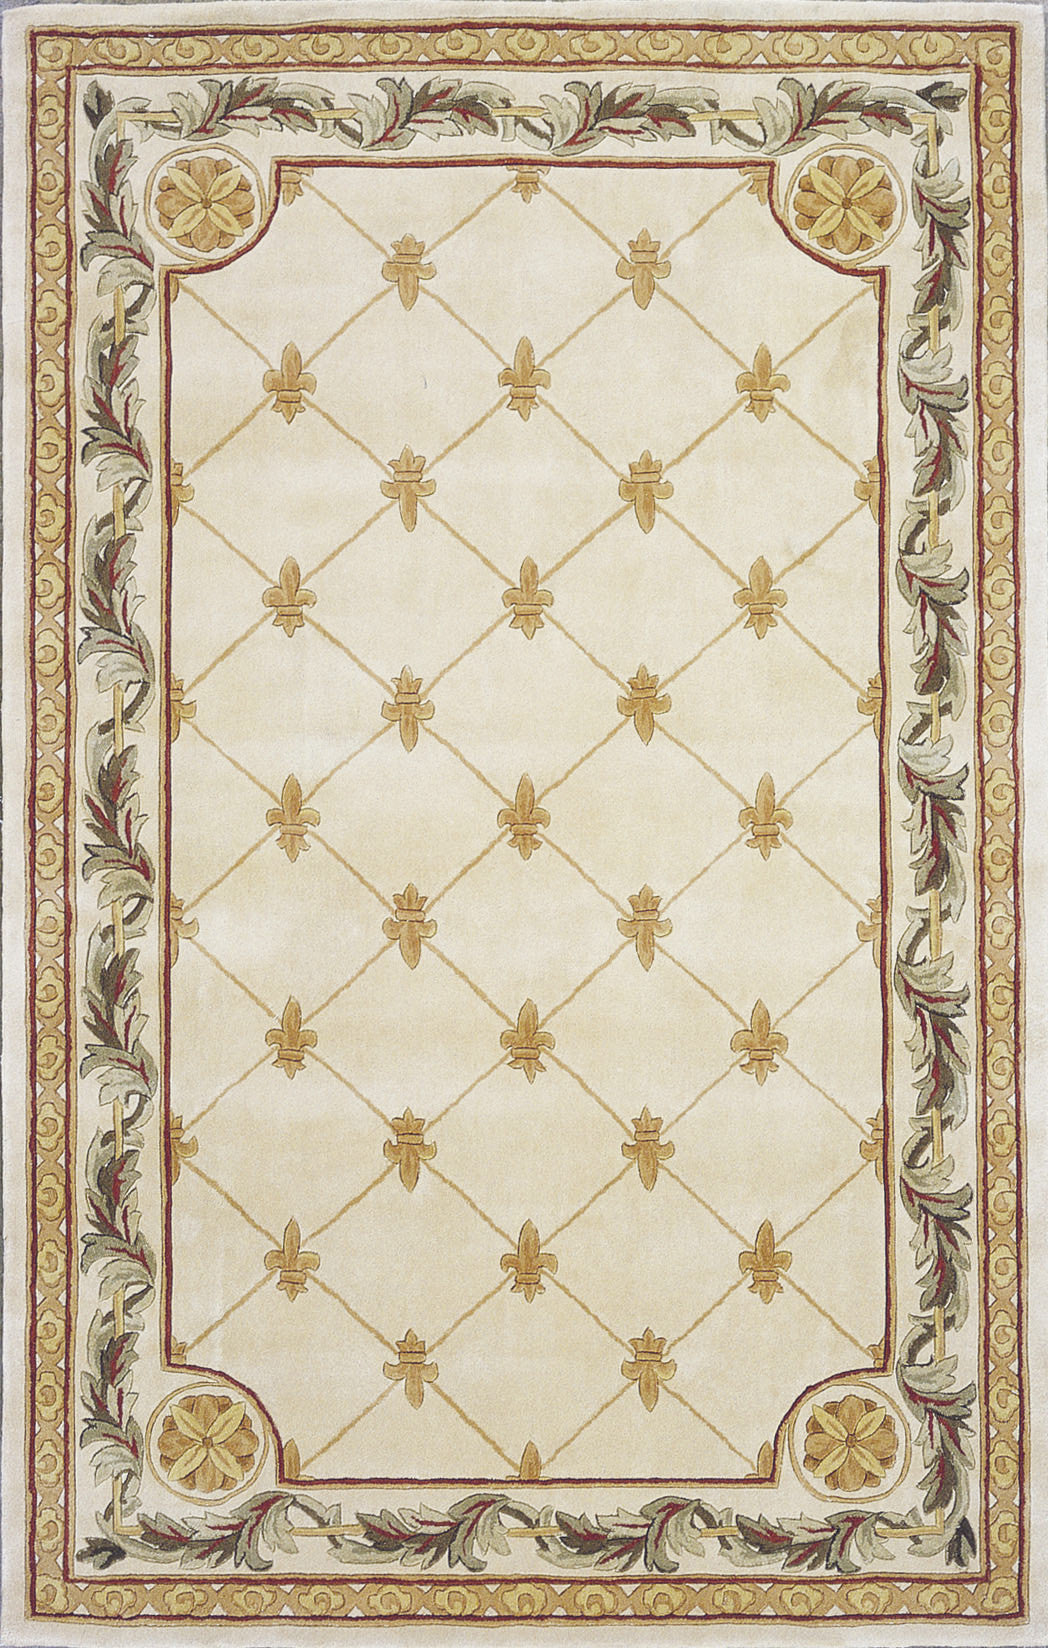 KAS Jewel 0310 Antique Ivory Fleur-De-Lis Hand Tufted Area Rug